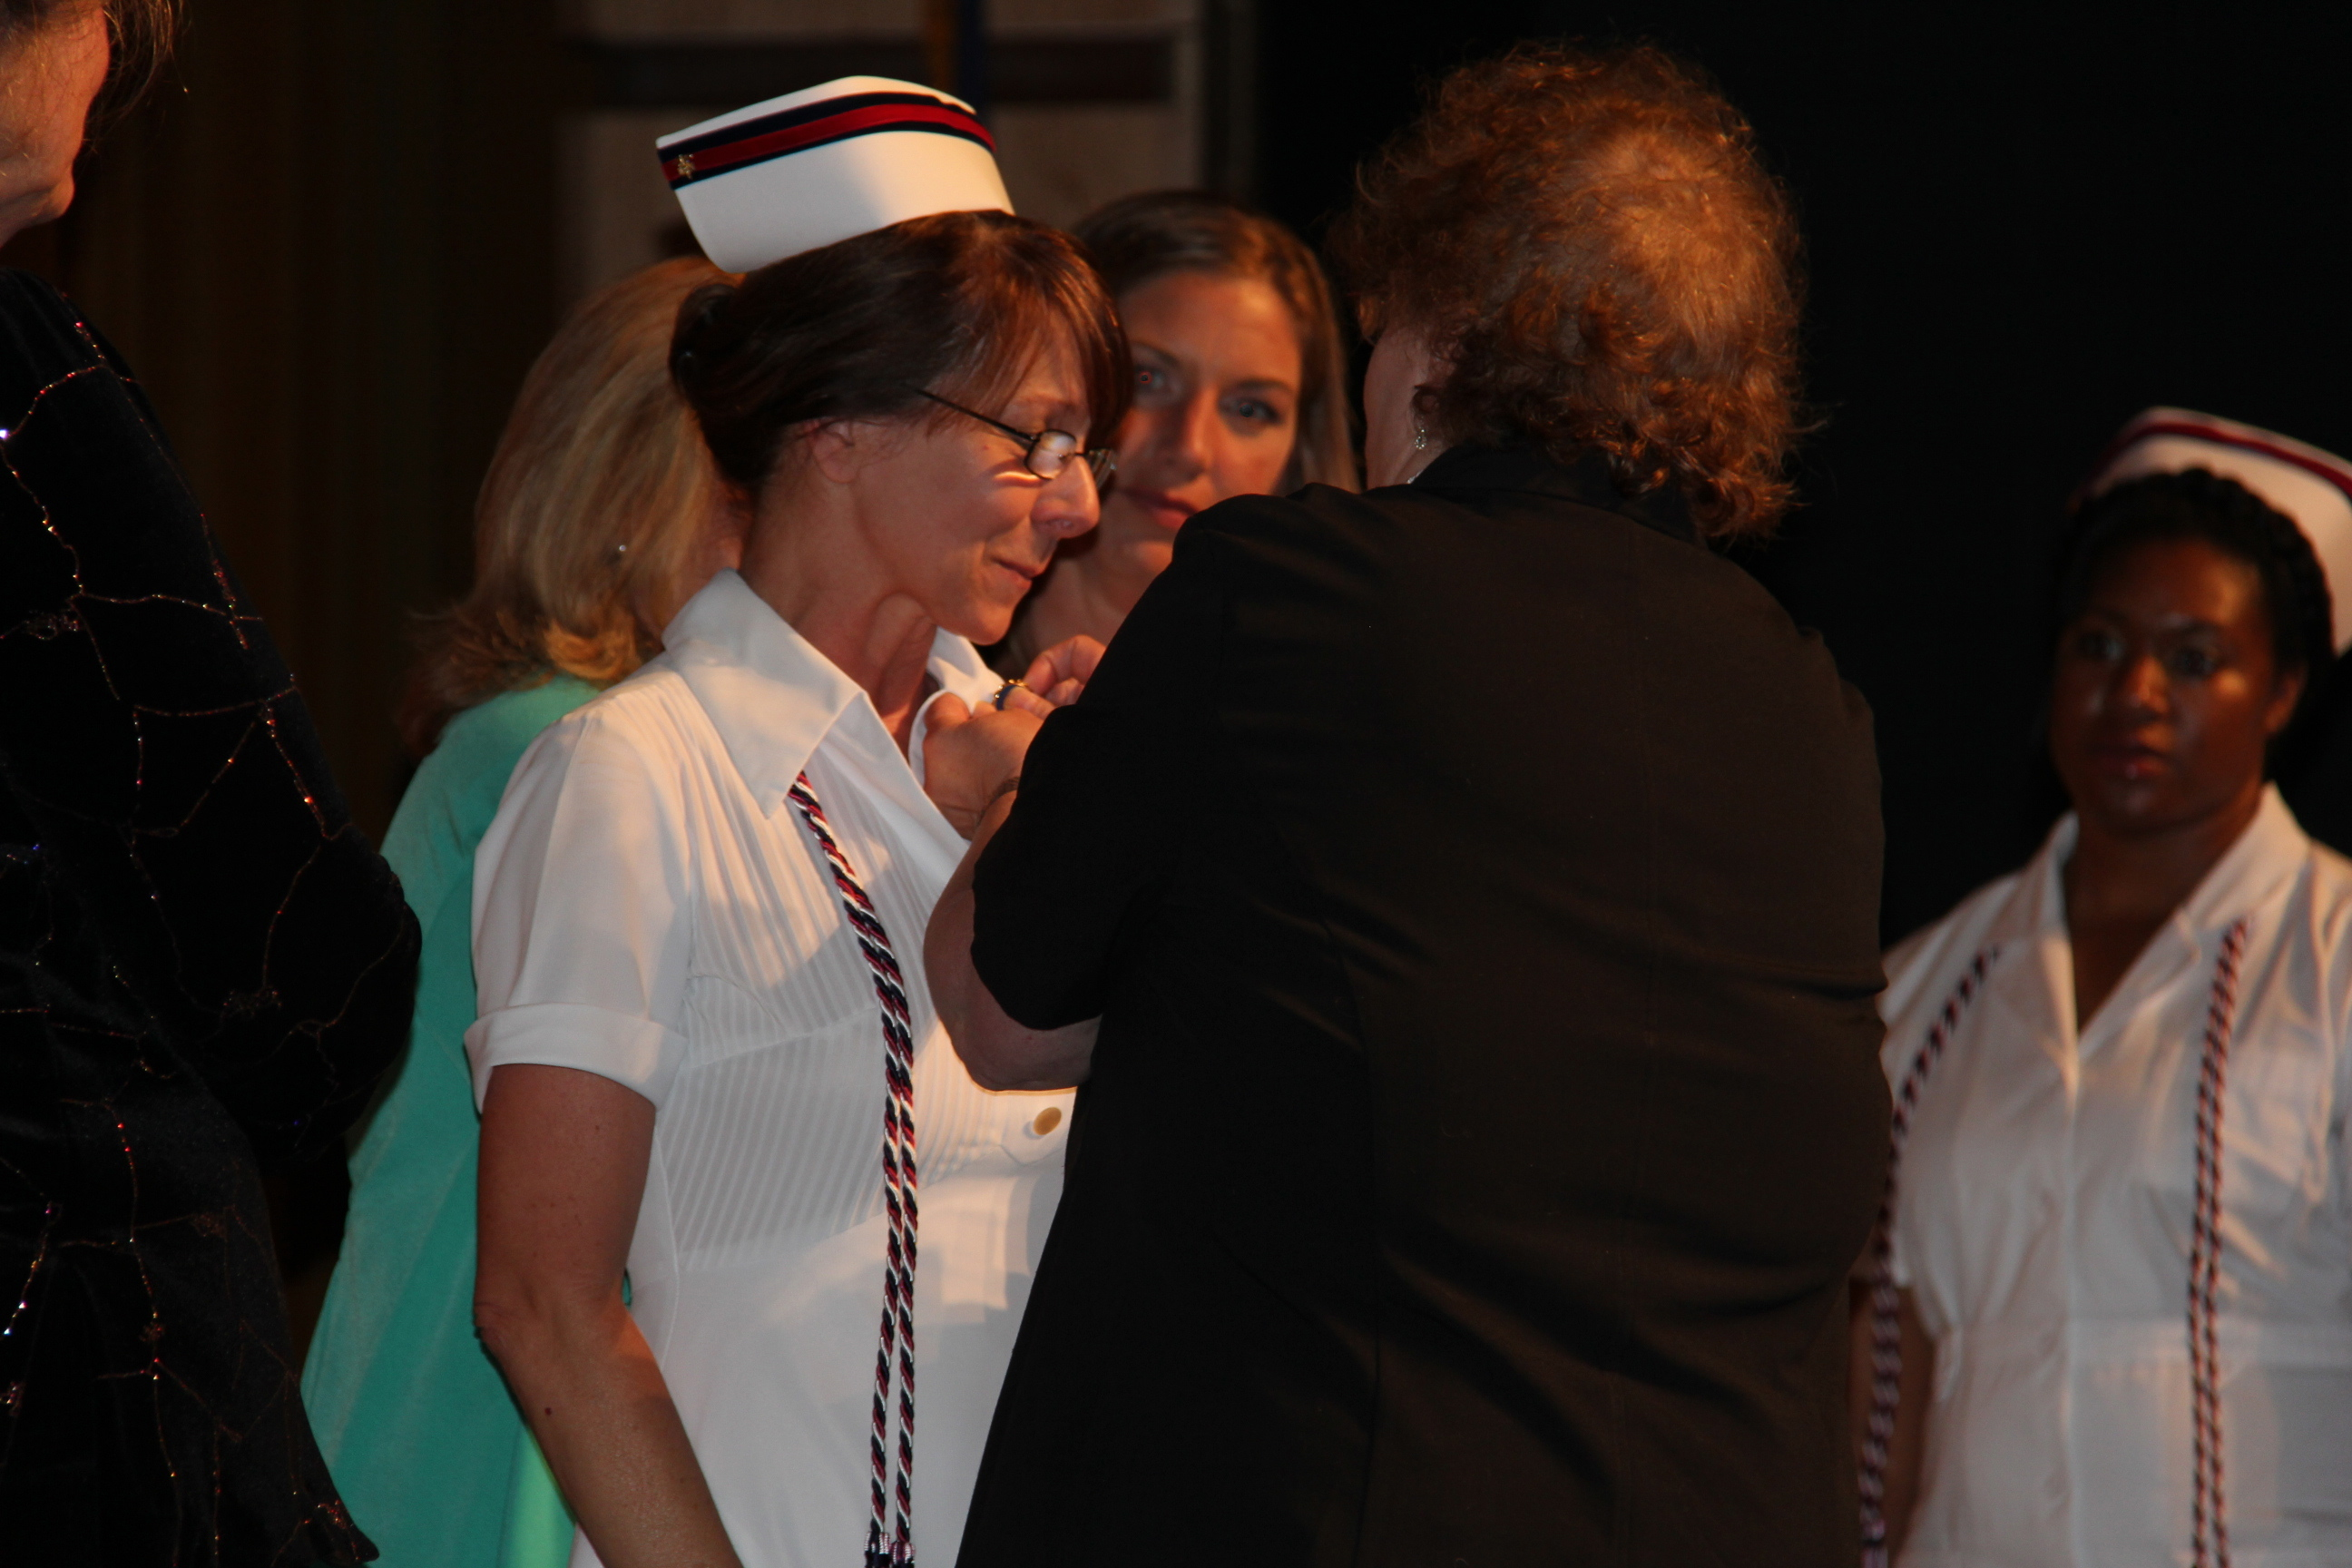 Jethro receives lapel pin at graduation